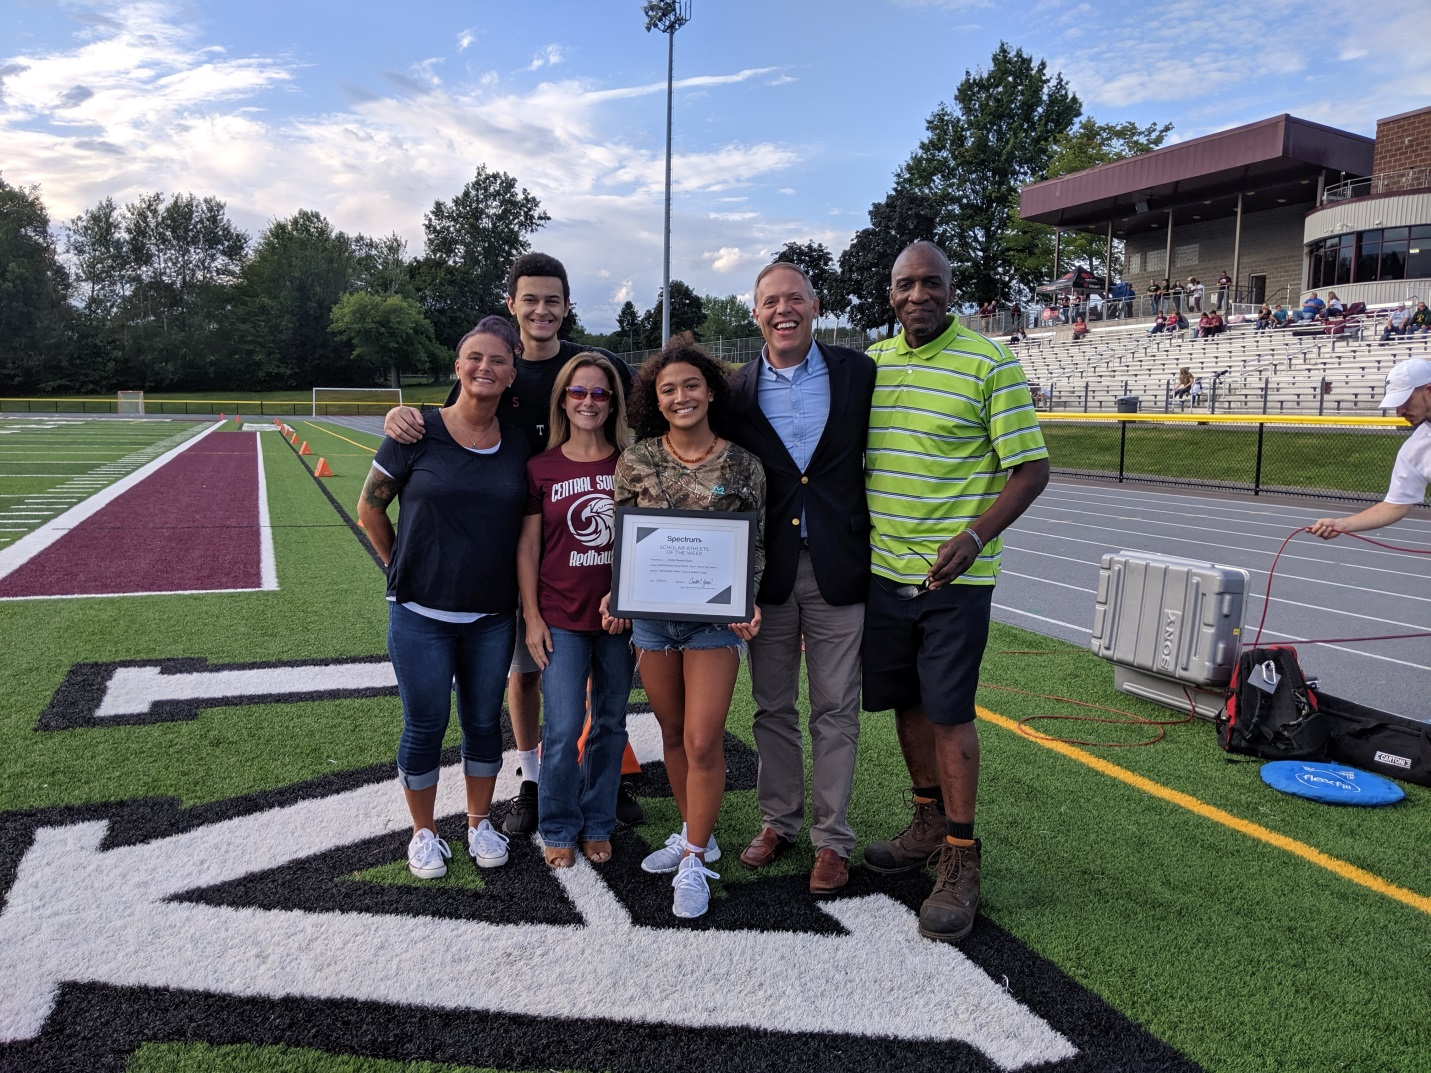 Assemblyman Will Barclay (R,C,I,Ref—Pulaski) recently presented Central Square's Jordan Ravenel-Shuler with a Spetrum News Scholar-Athlete Scholarship Award.  Also pictured is the Central Sq